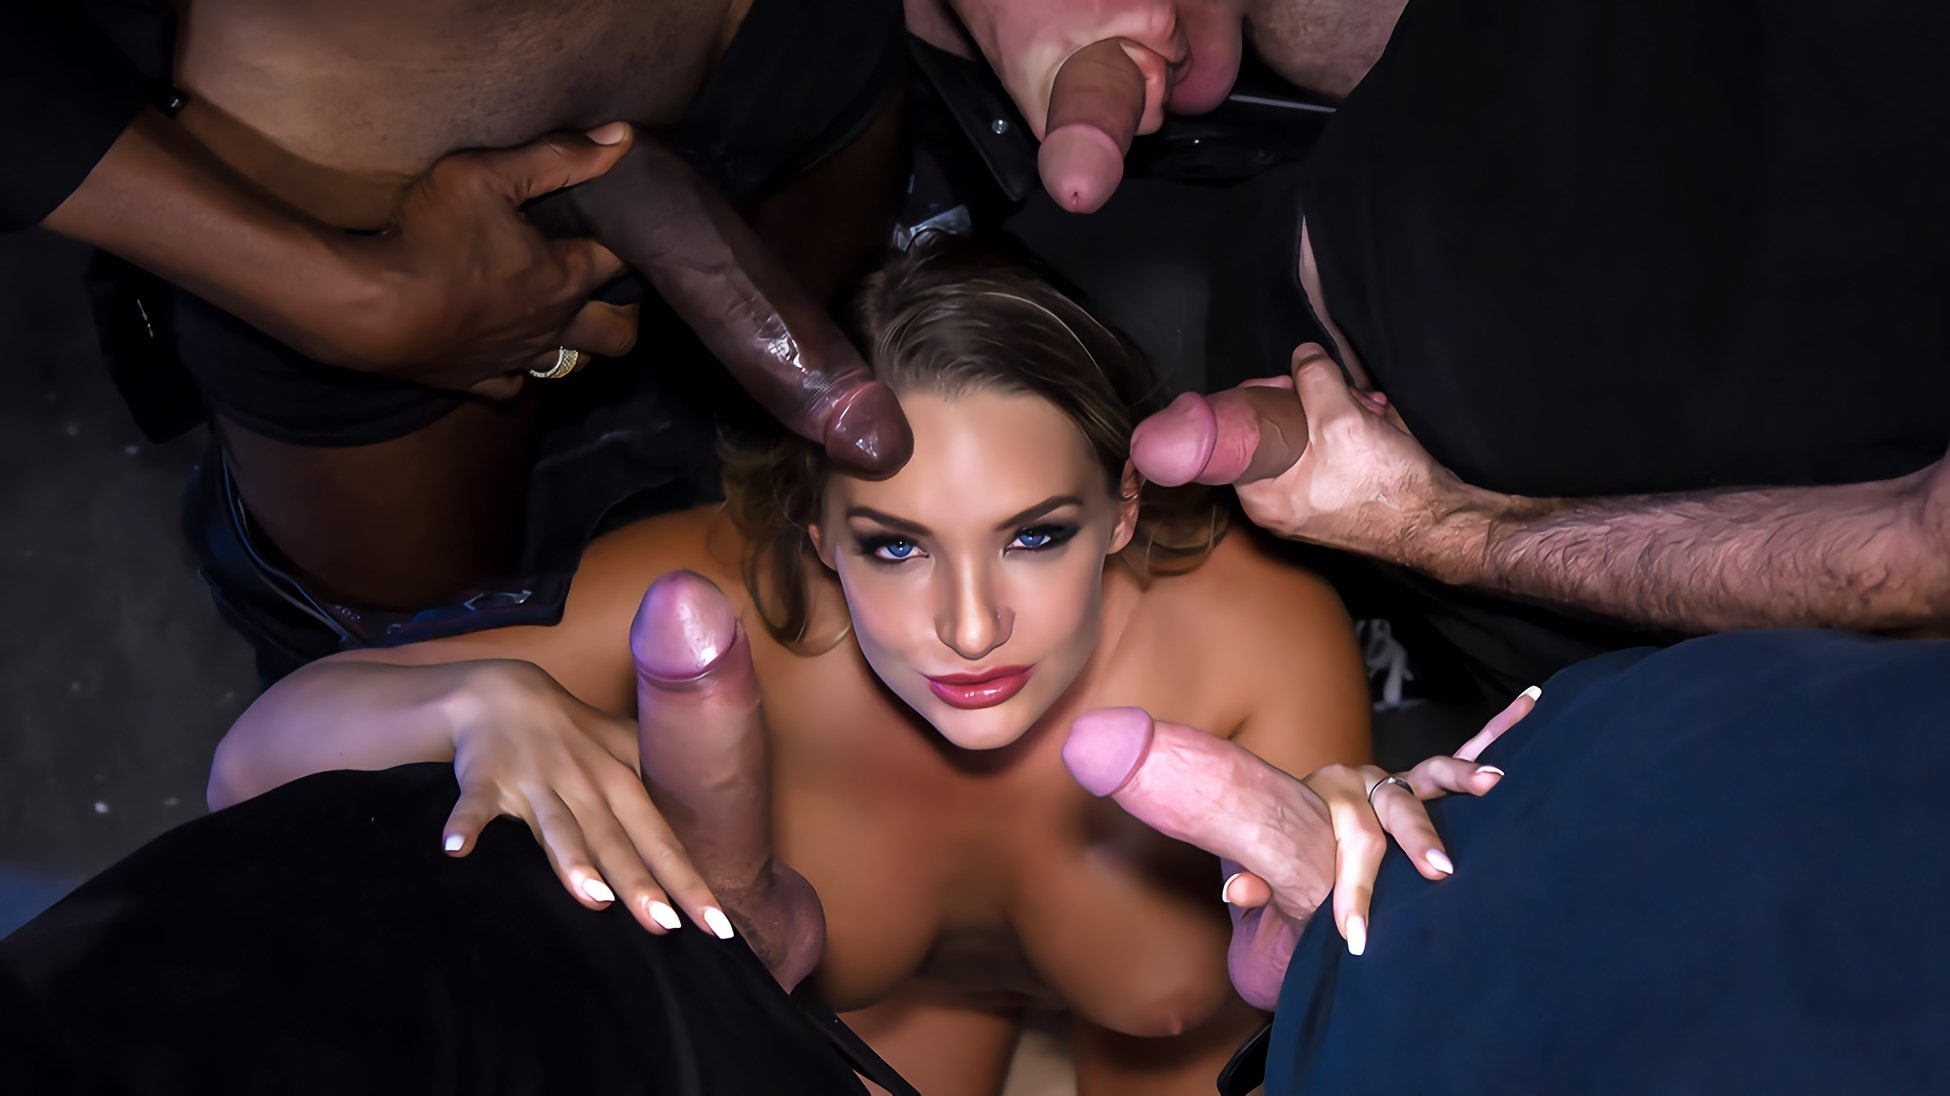 Cali Carter - The Exxxceptions: Episode 1 | Picture (6)